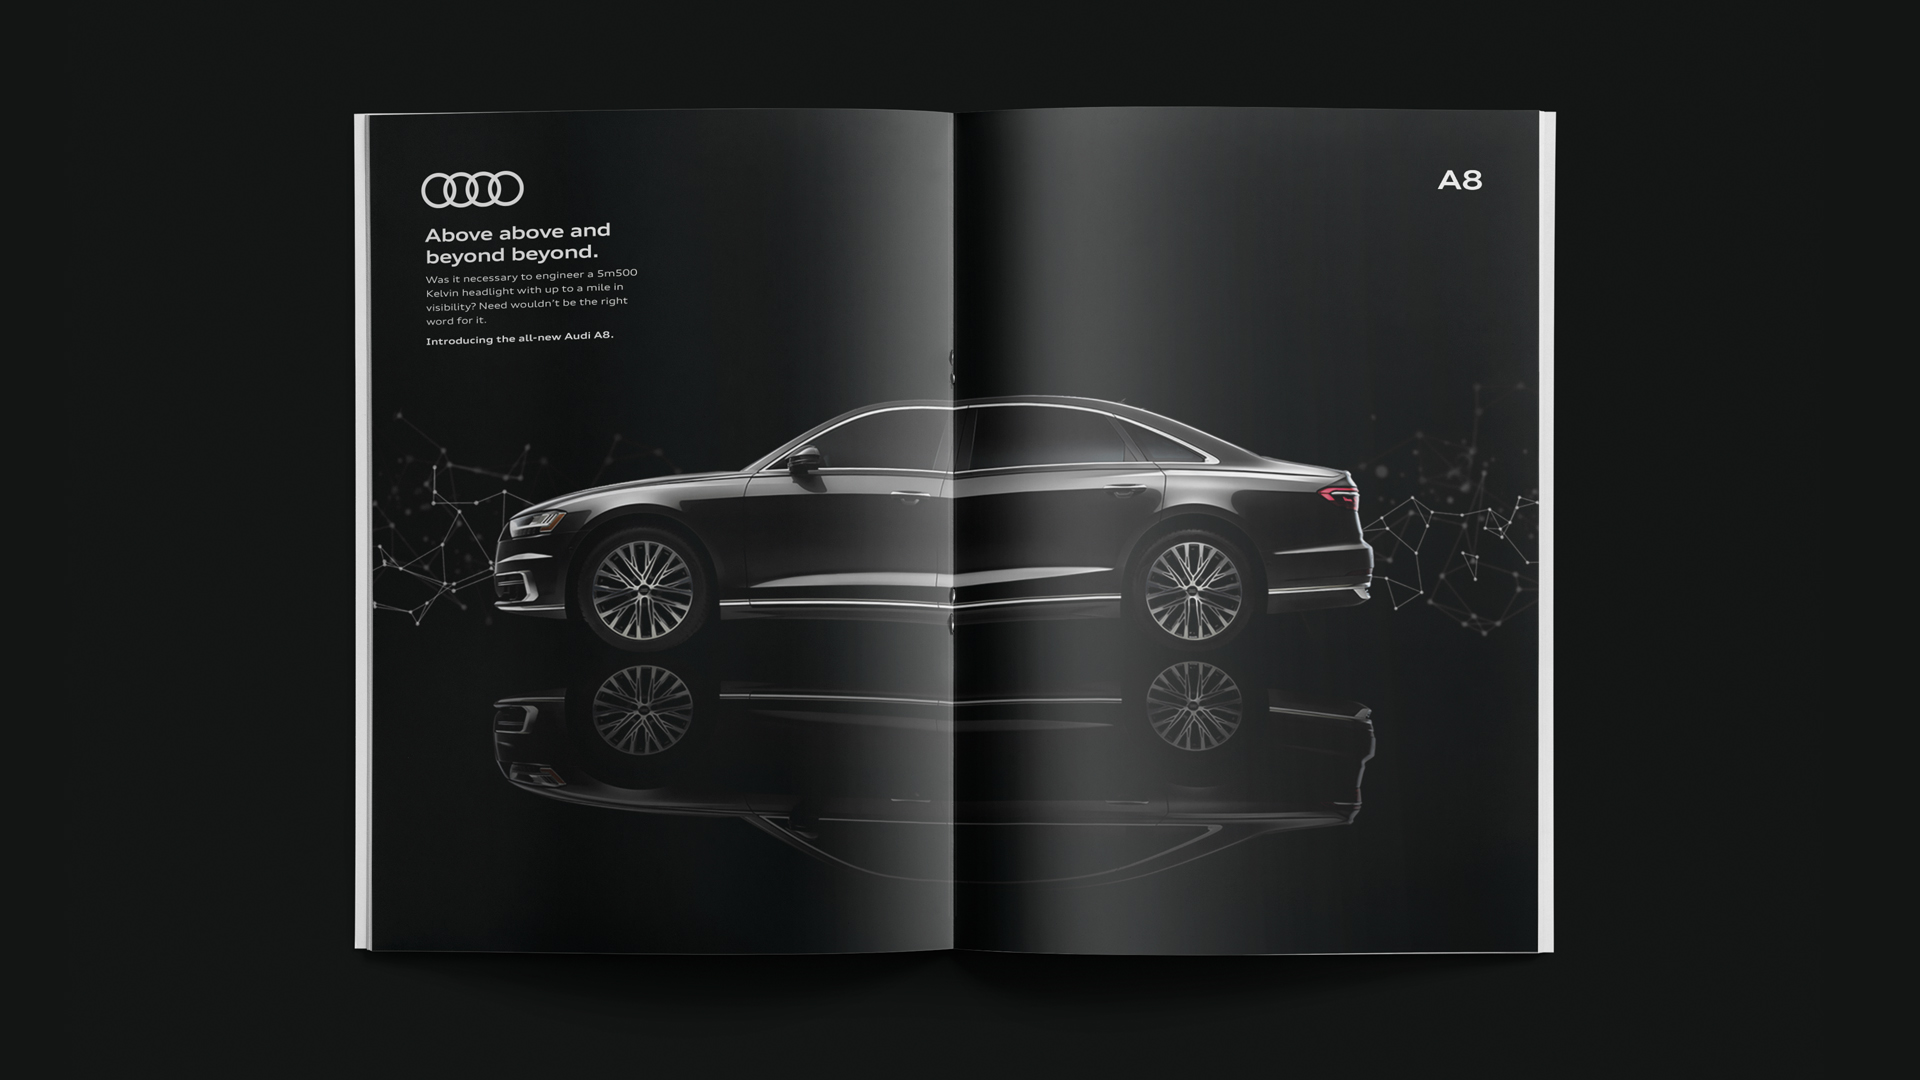 Audi_A8_1920x1080_01_0005_Layer Comp 6